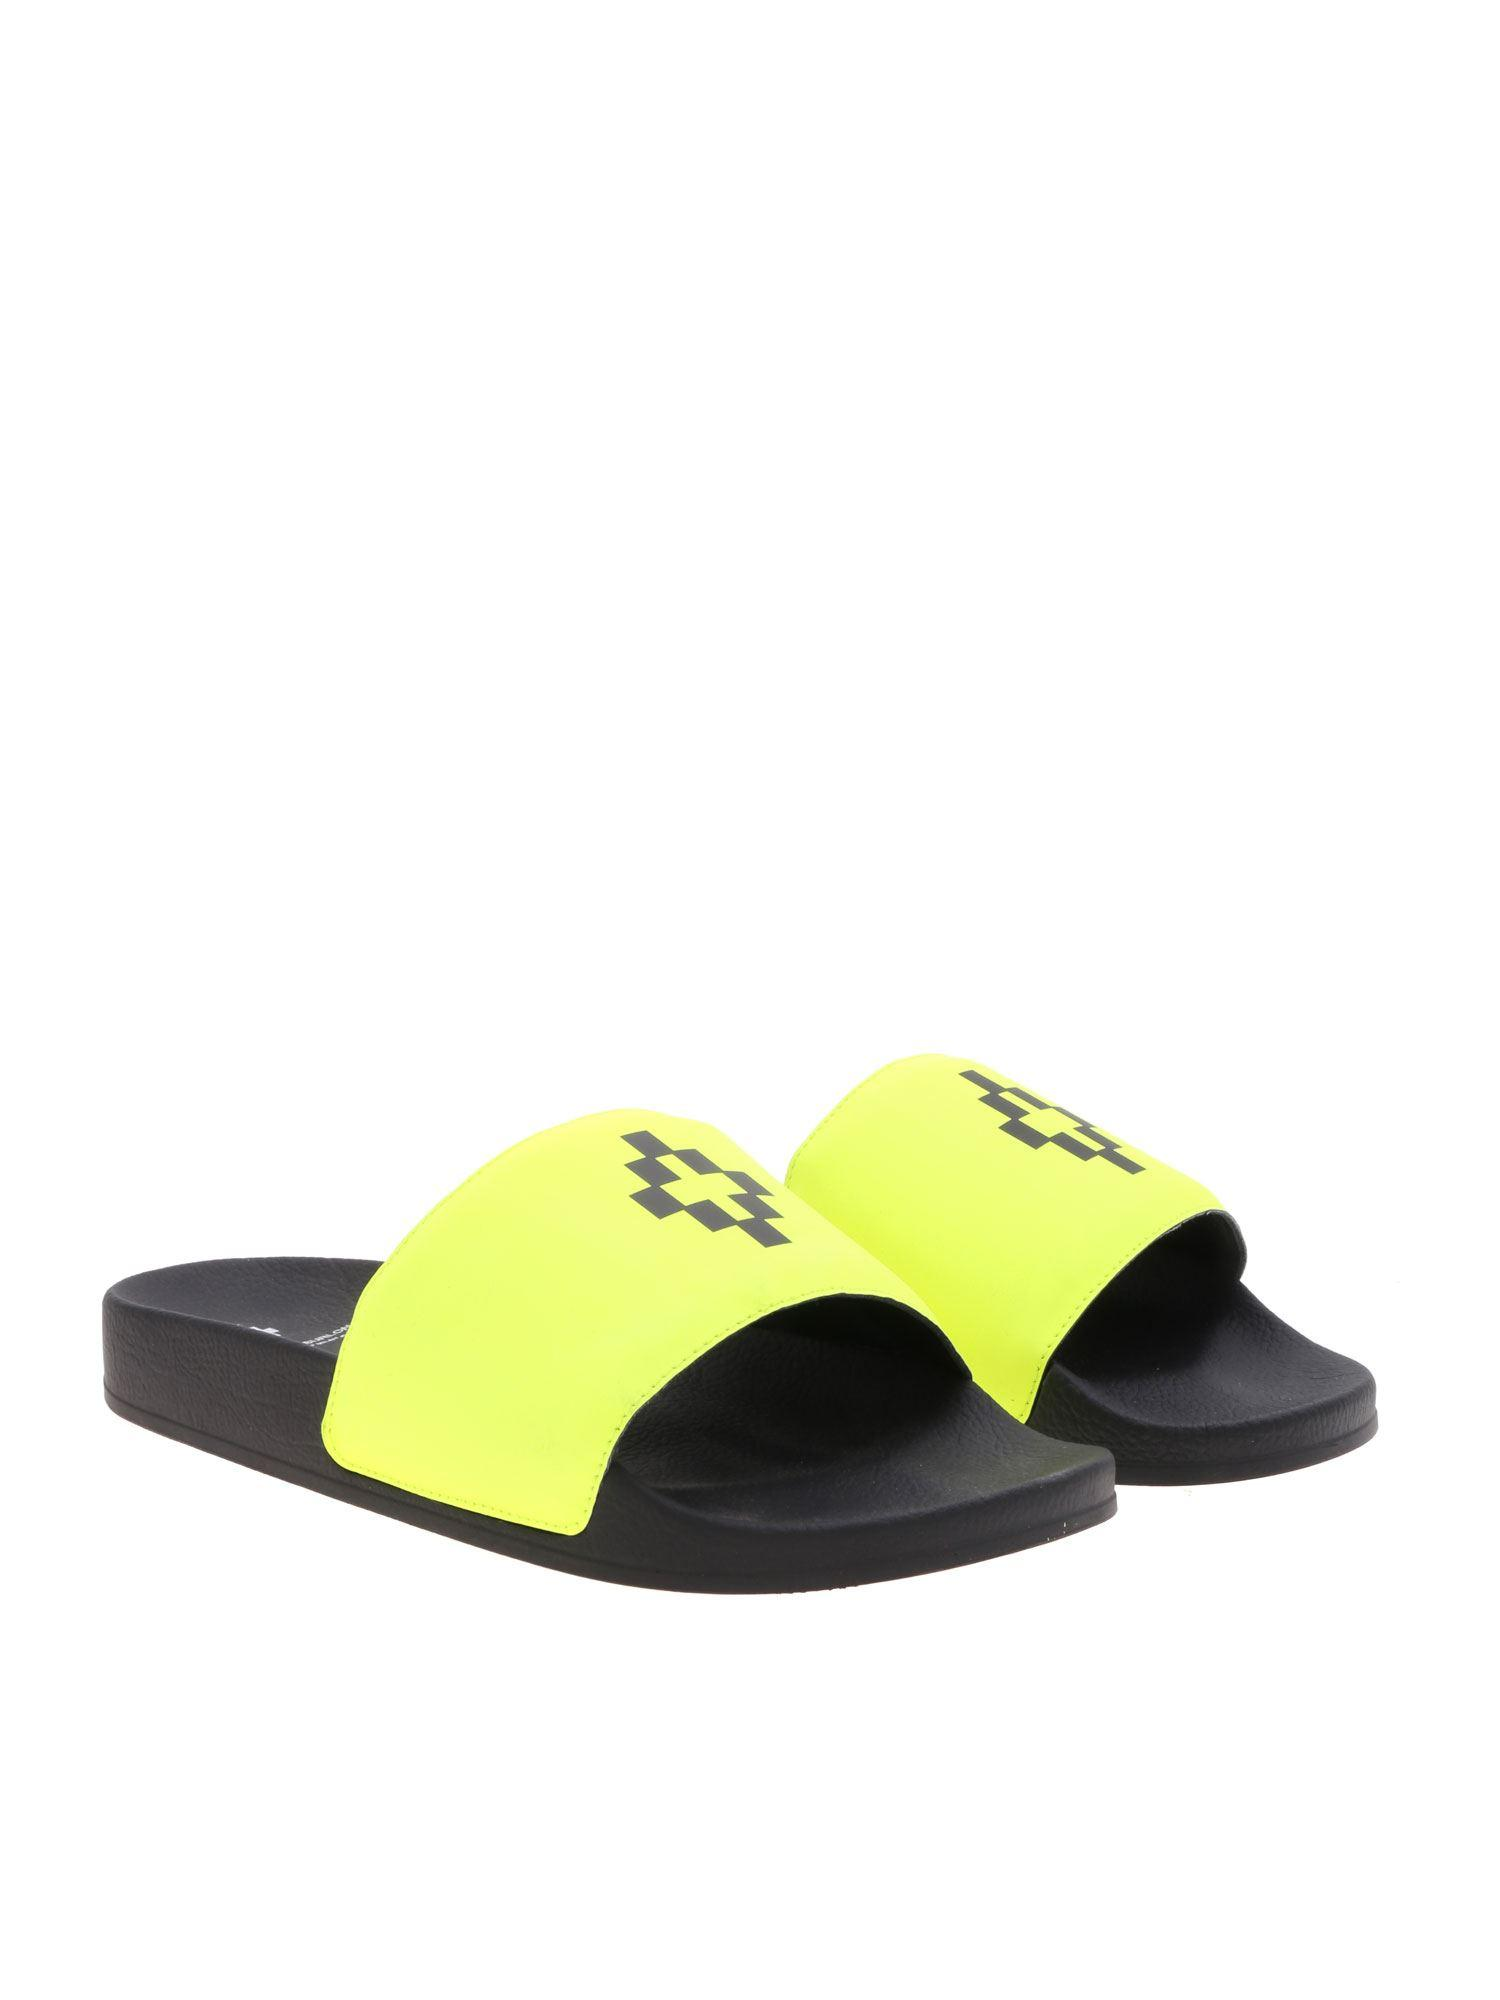 bc2a3521d Lyst - Marcelo Burlon Cross Slides In Black And Neon Yellow in Black for Men